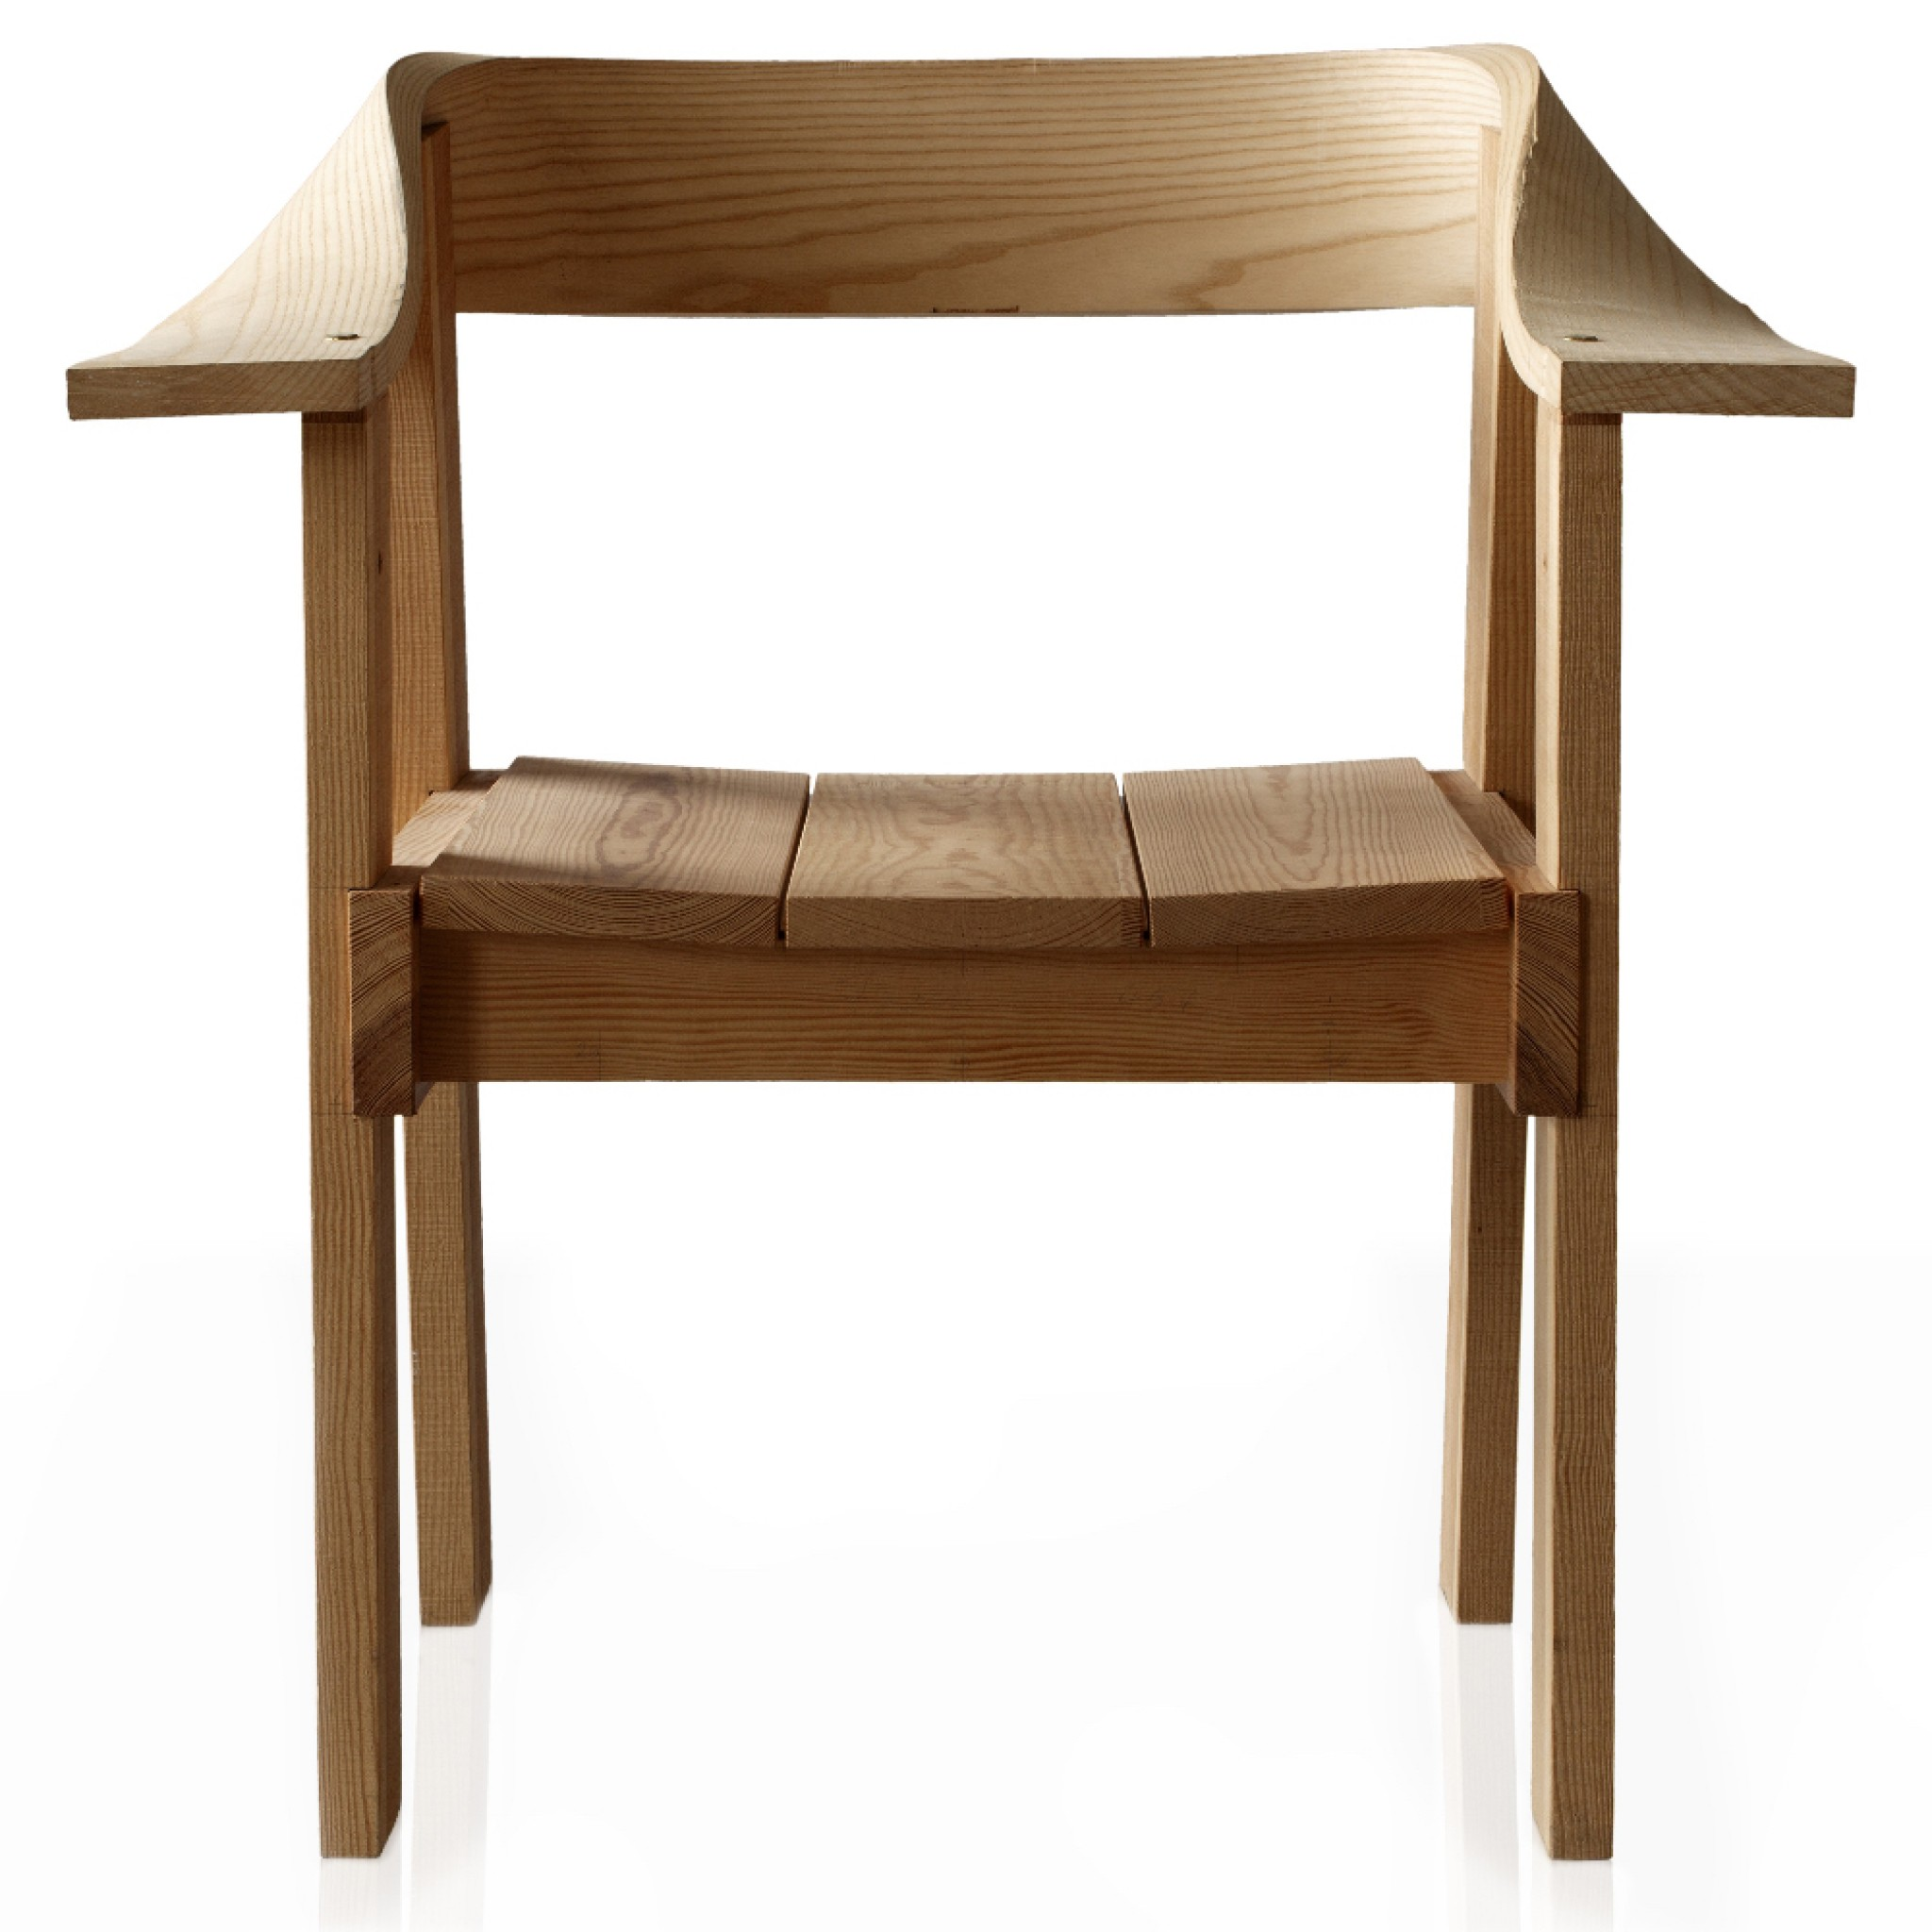 The backrest curves at a complicated angle – one that would seem impossible to achieve with a wooden plank.